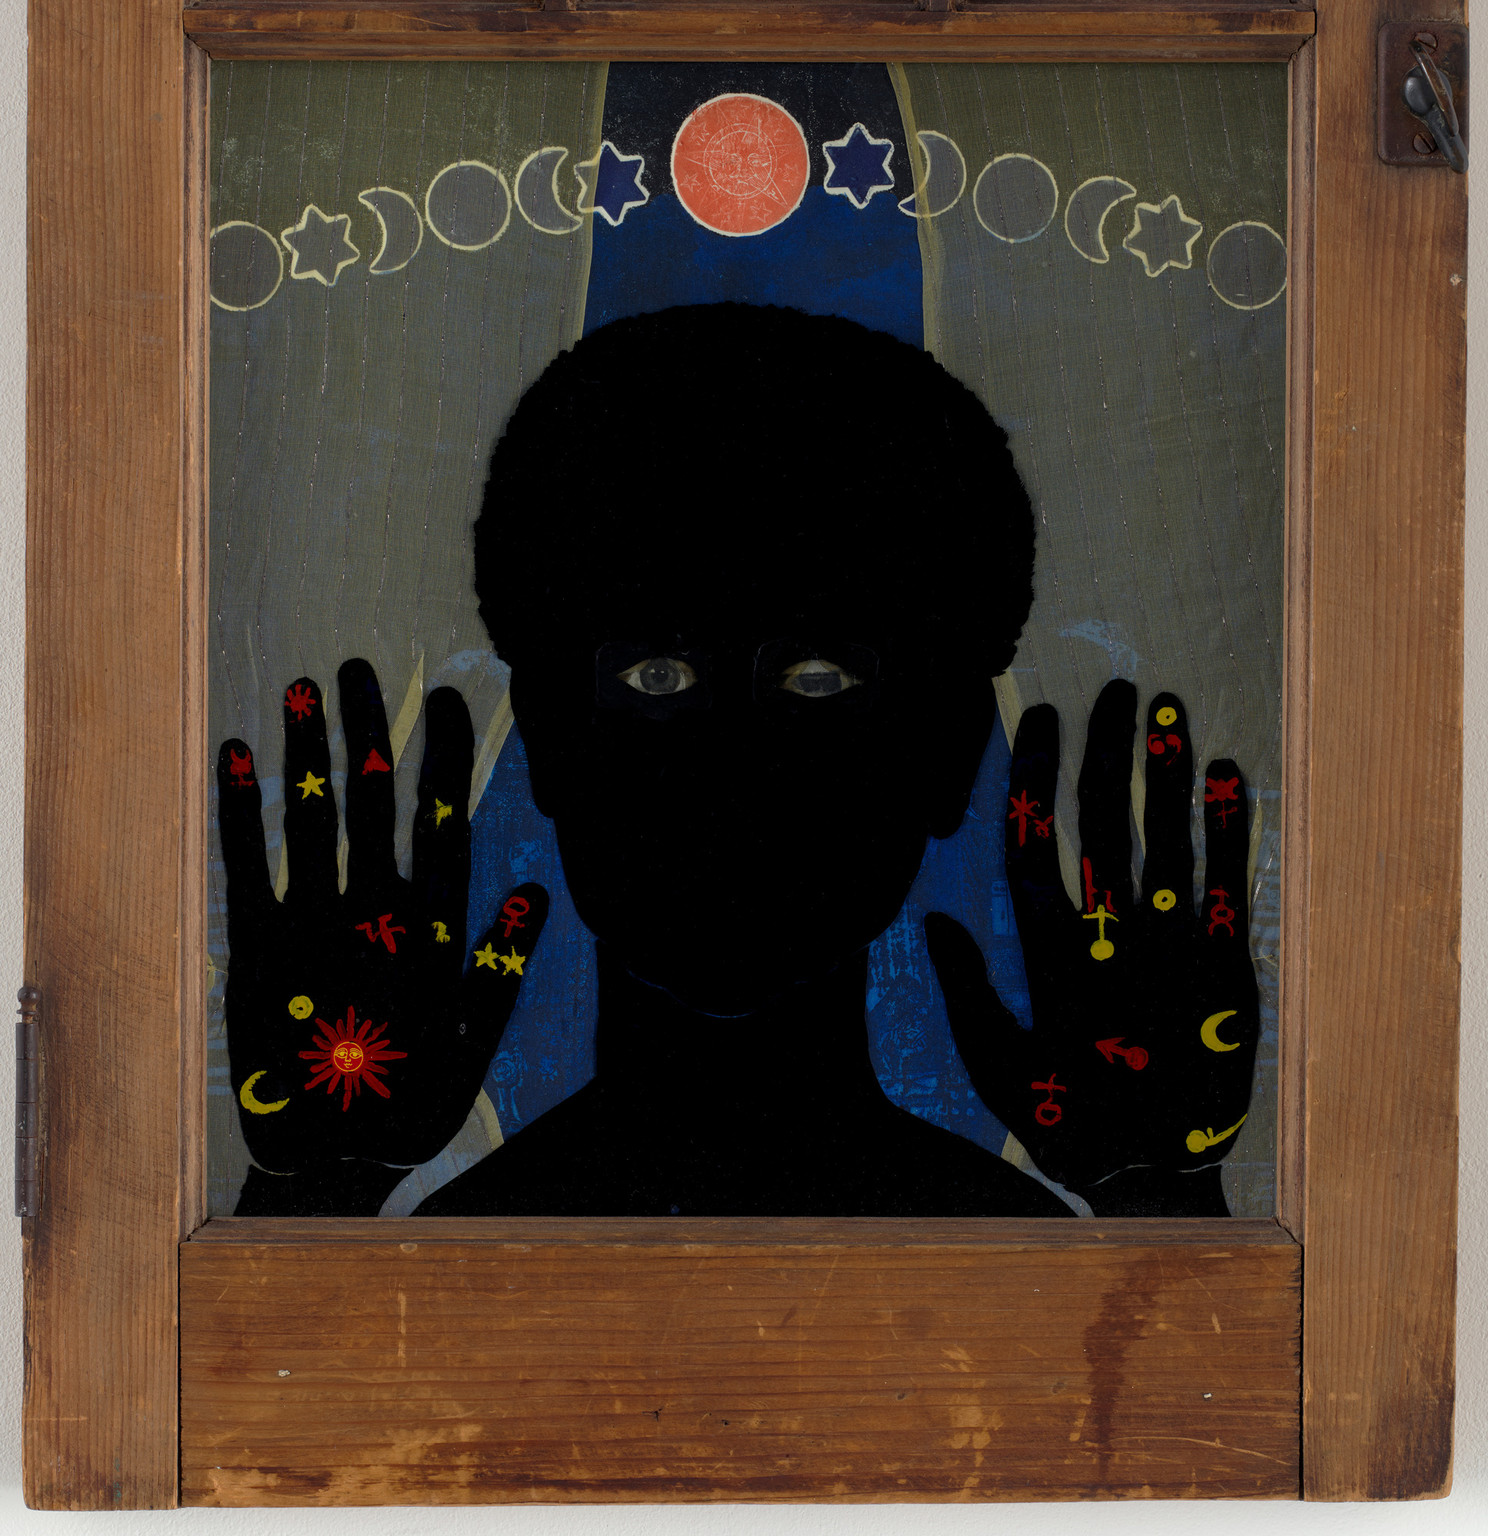 "Betye Saar. _Black Girl's Window. 1969. Wooden window frame with paint, cut-and-pasted printed and painted papers, daguerreotype, lenticular print, and plastic figurine. 35 3/4 x 18 x 1 1/2"" (90.8 x 45.7 x 3.8 cm). Gift of Candace King Weir through The Modern Women'sFund, and Committee on Painting and Sculpture Funds"